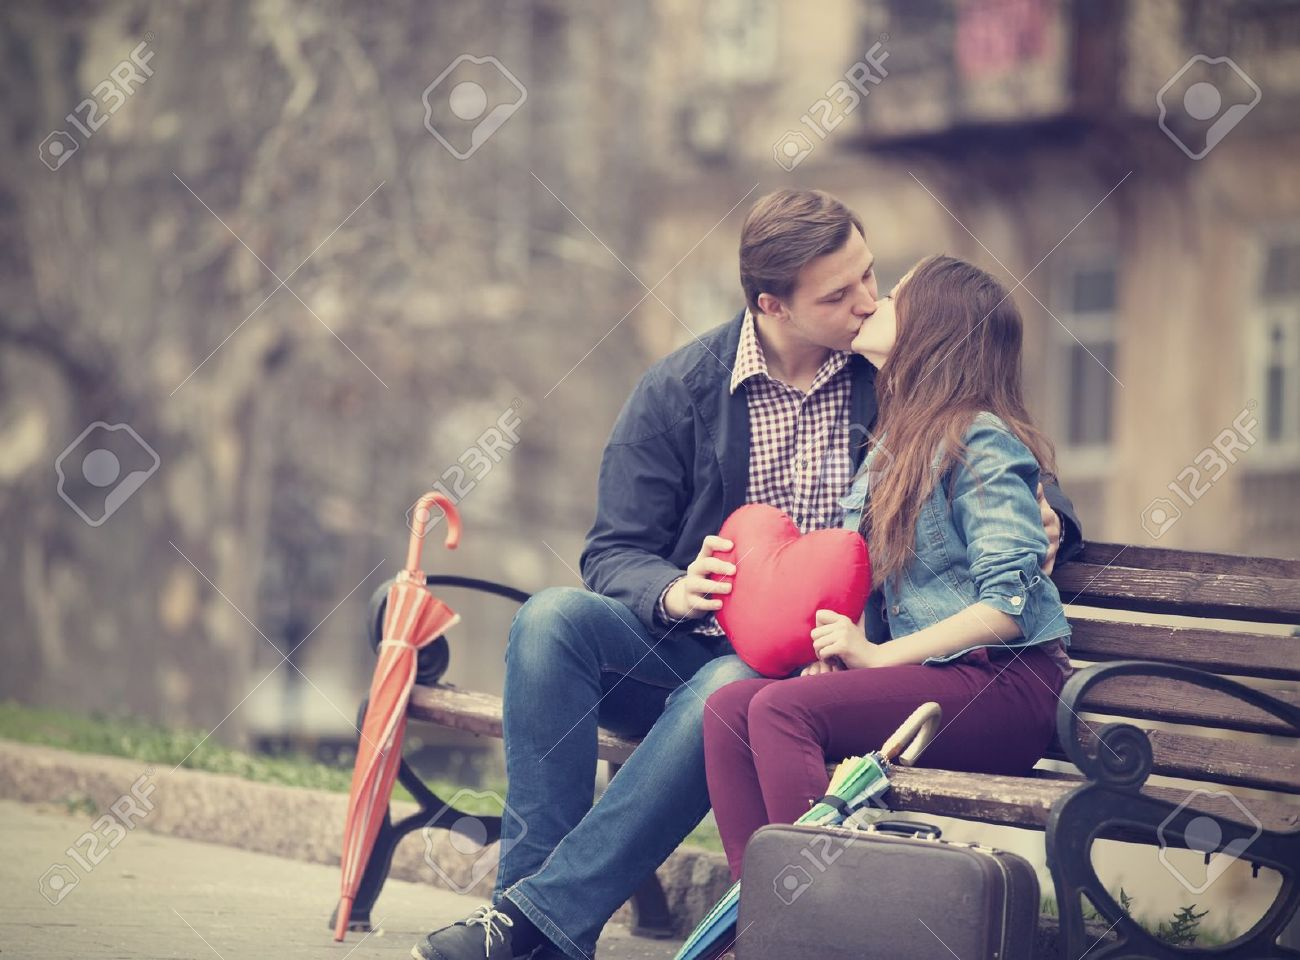 Young Couple Kissing On The Street Stock Photo Picture And Royalty